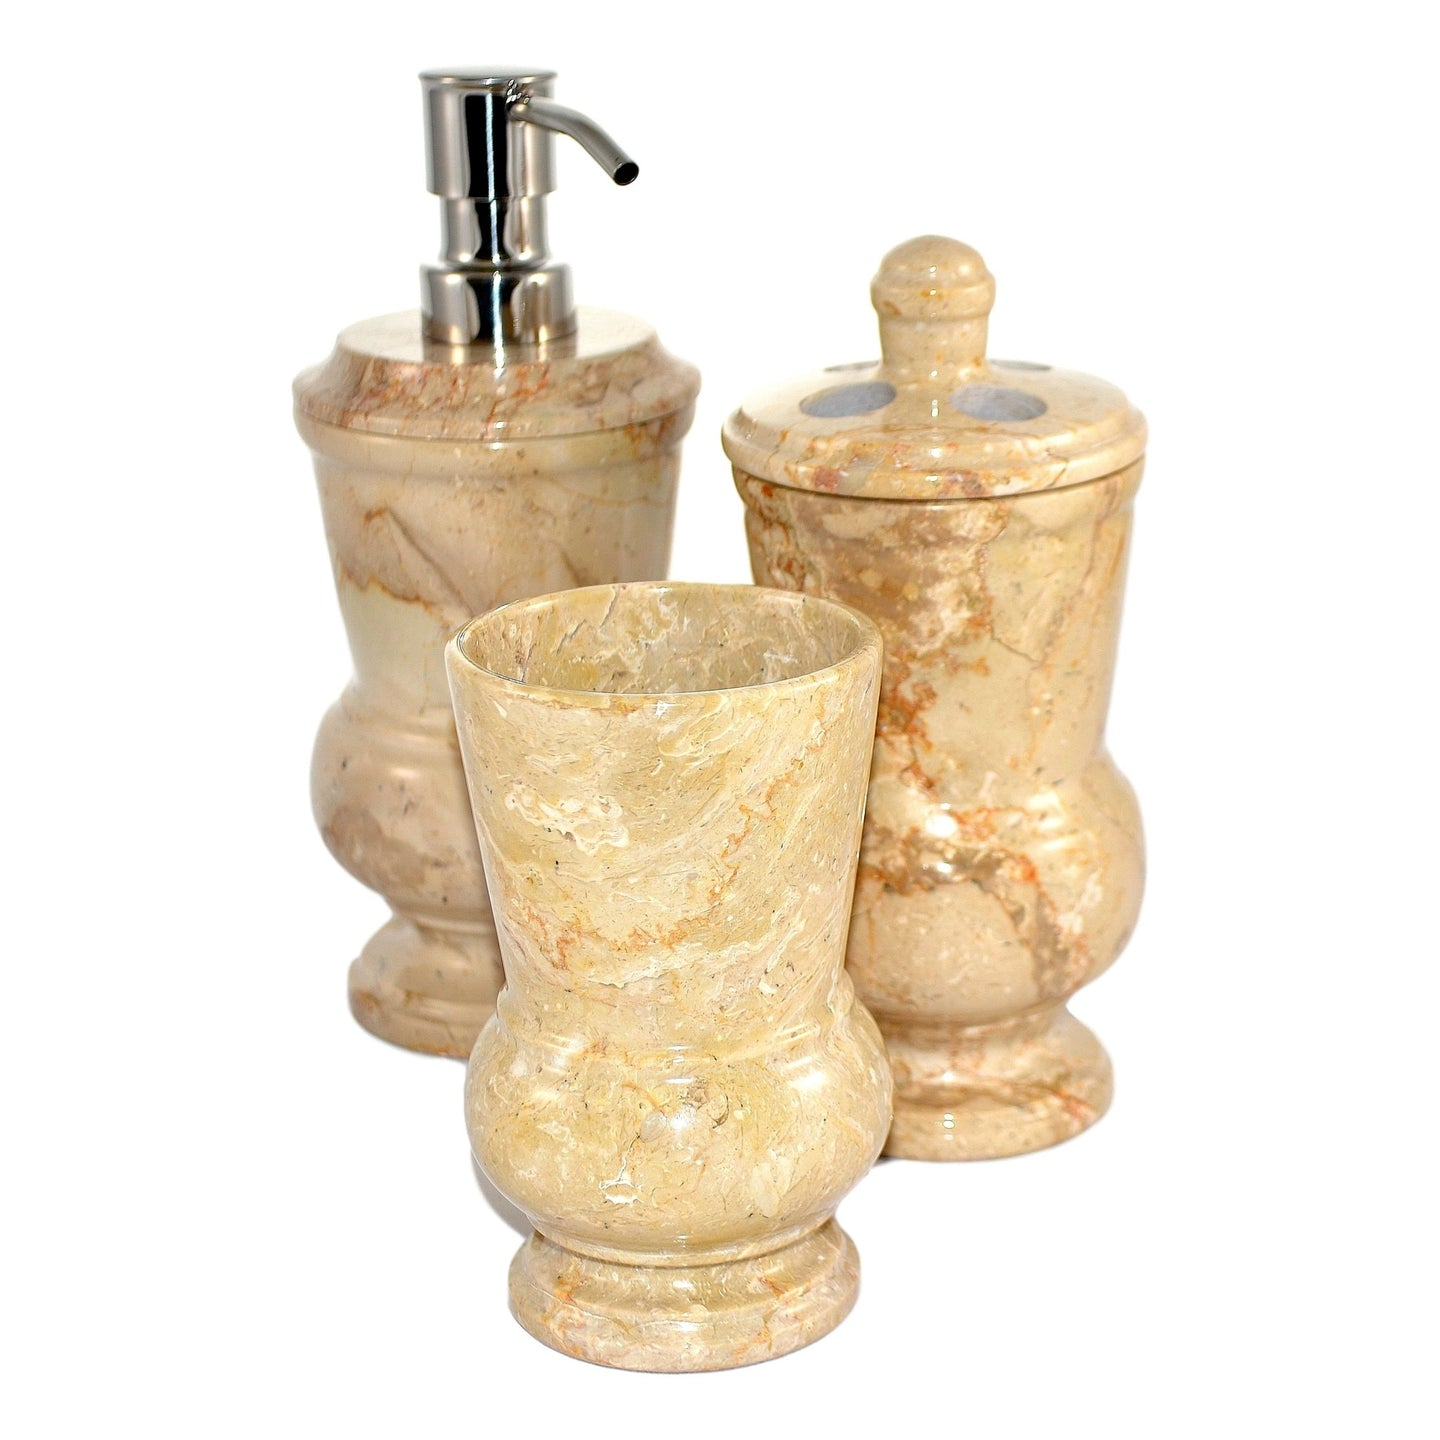 Marble Bathroom Accessory Set | Sahara Beige Marble 3-Piece Set of Mediterranean Collection - Nature Home Decor